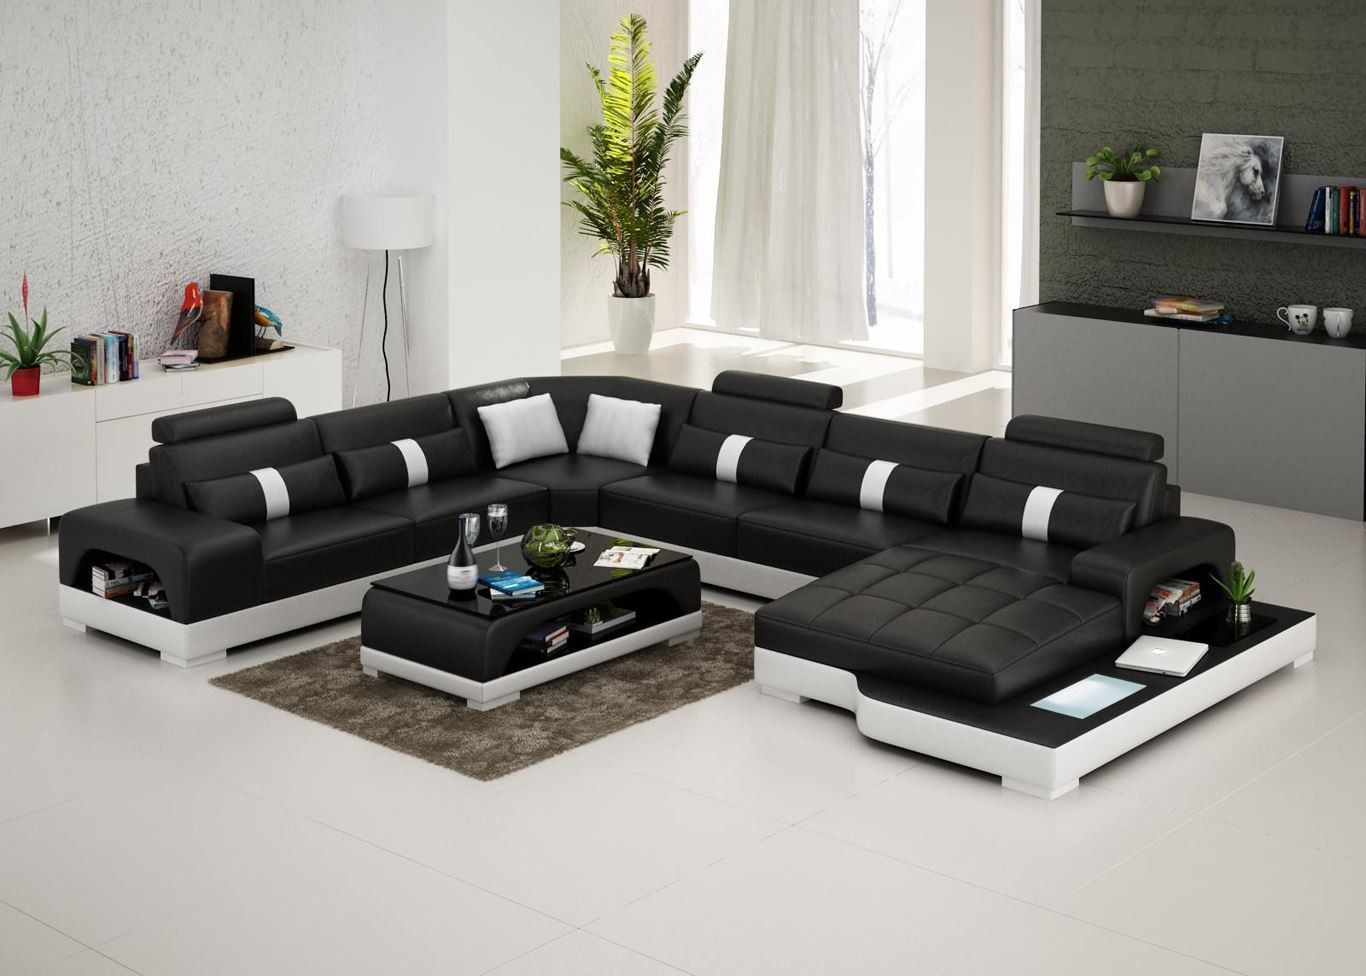 fancy sectional sofas black leather sofa gumtree connie living room furniture from opulent items ihso01253 leathersectionalsofas